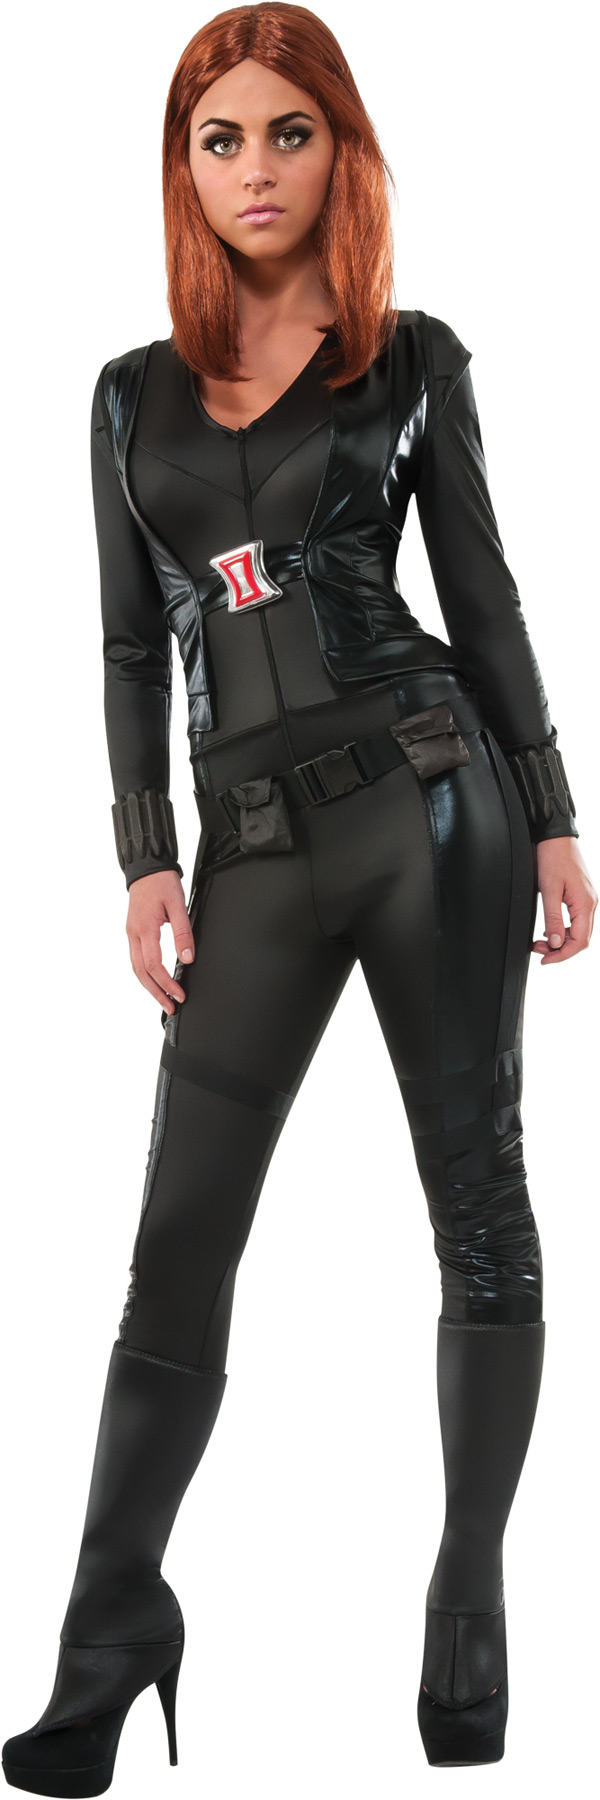 BLACK WIDOW ADULT LARGE